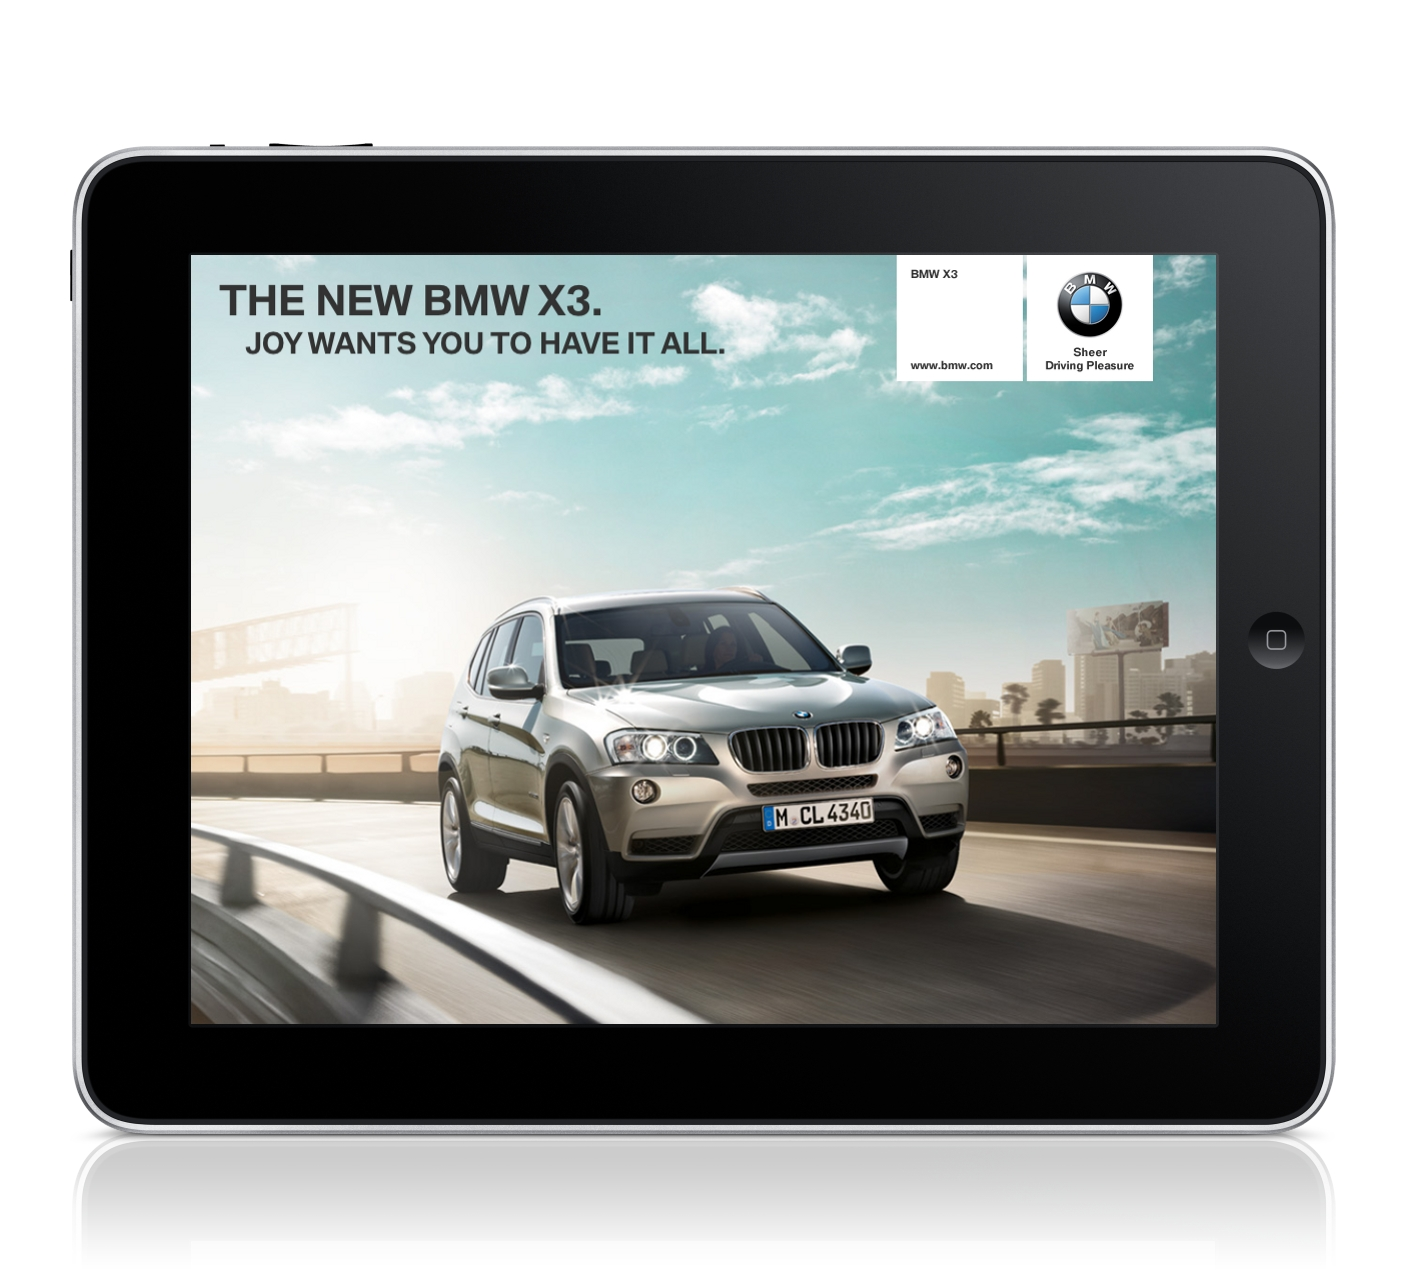 The New BMW X3 On The IPad